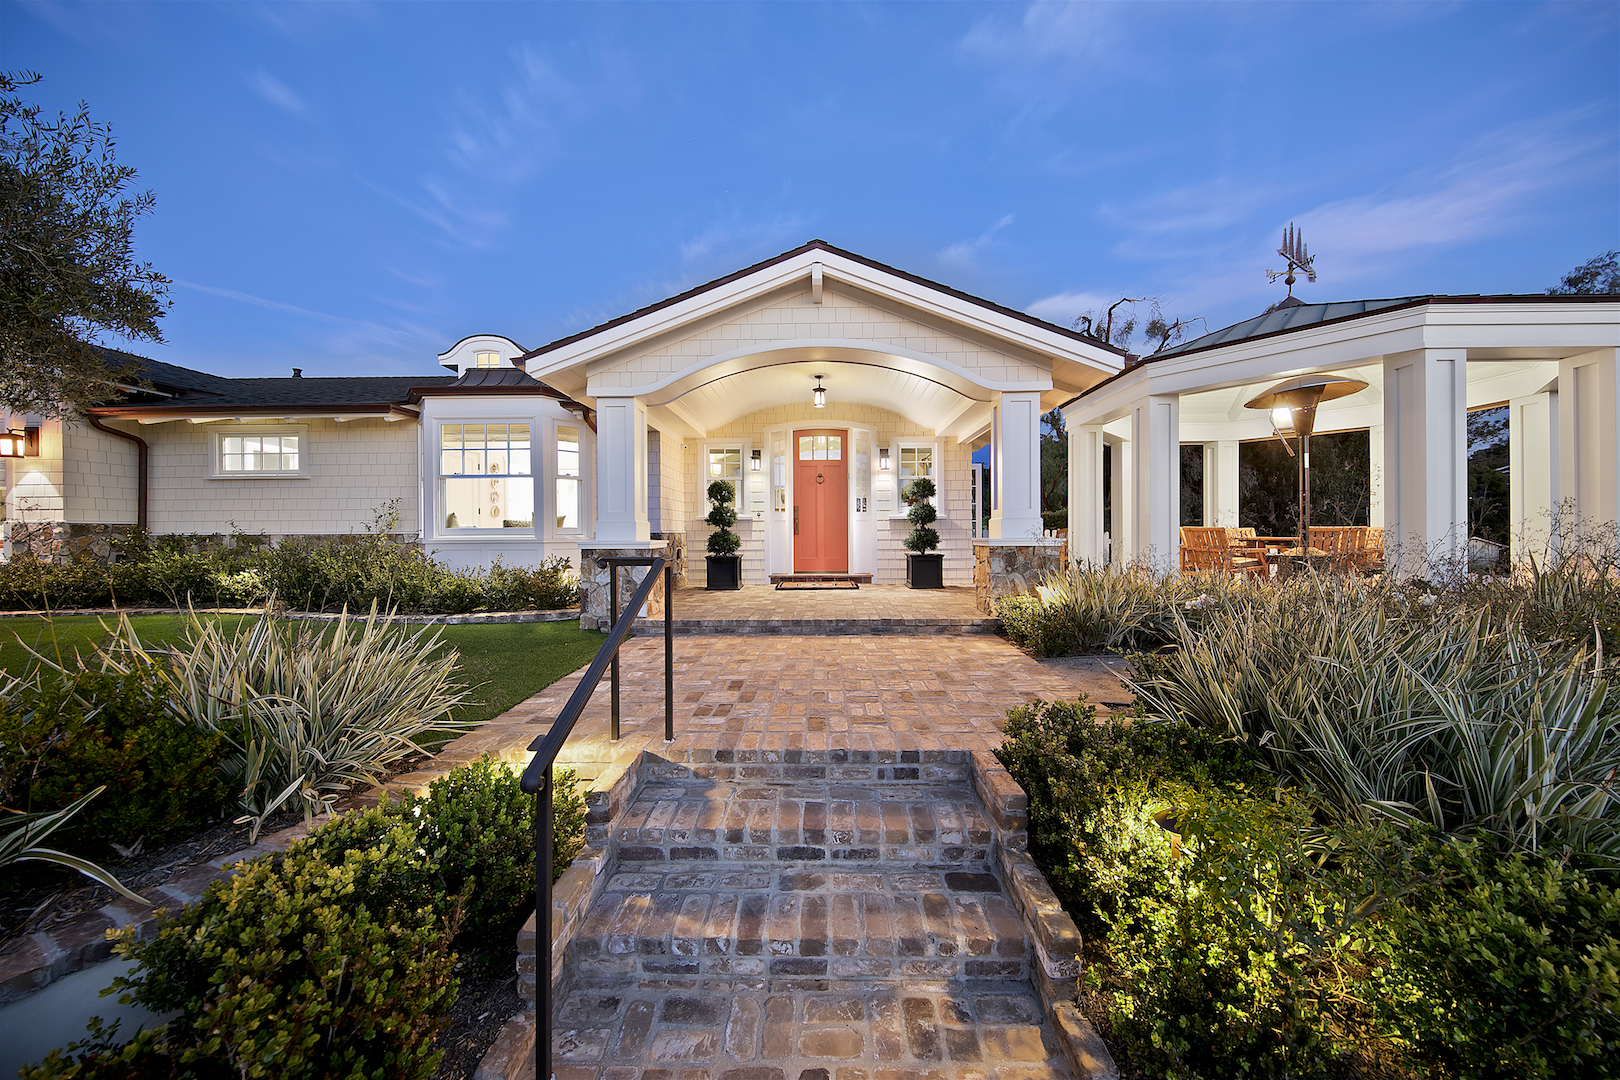 Sold 2019 Laura Represented Seller -  Del Mar, CA 92014